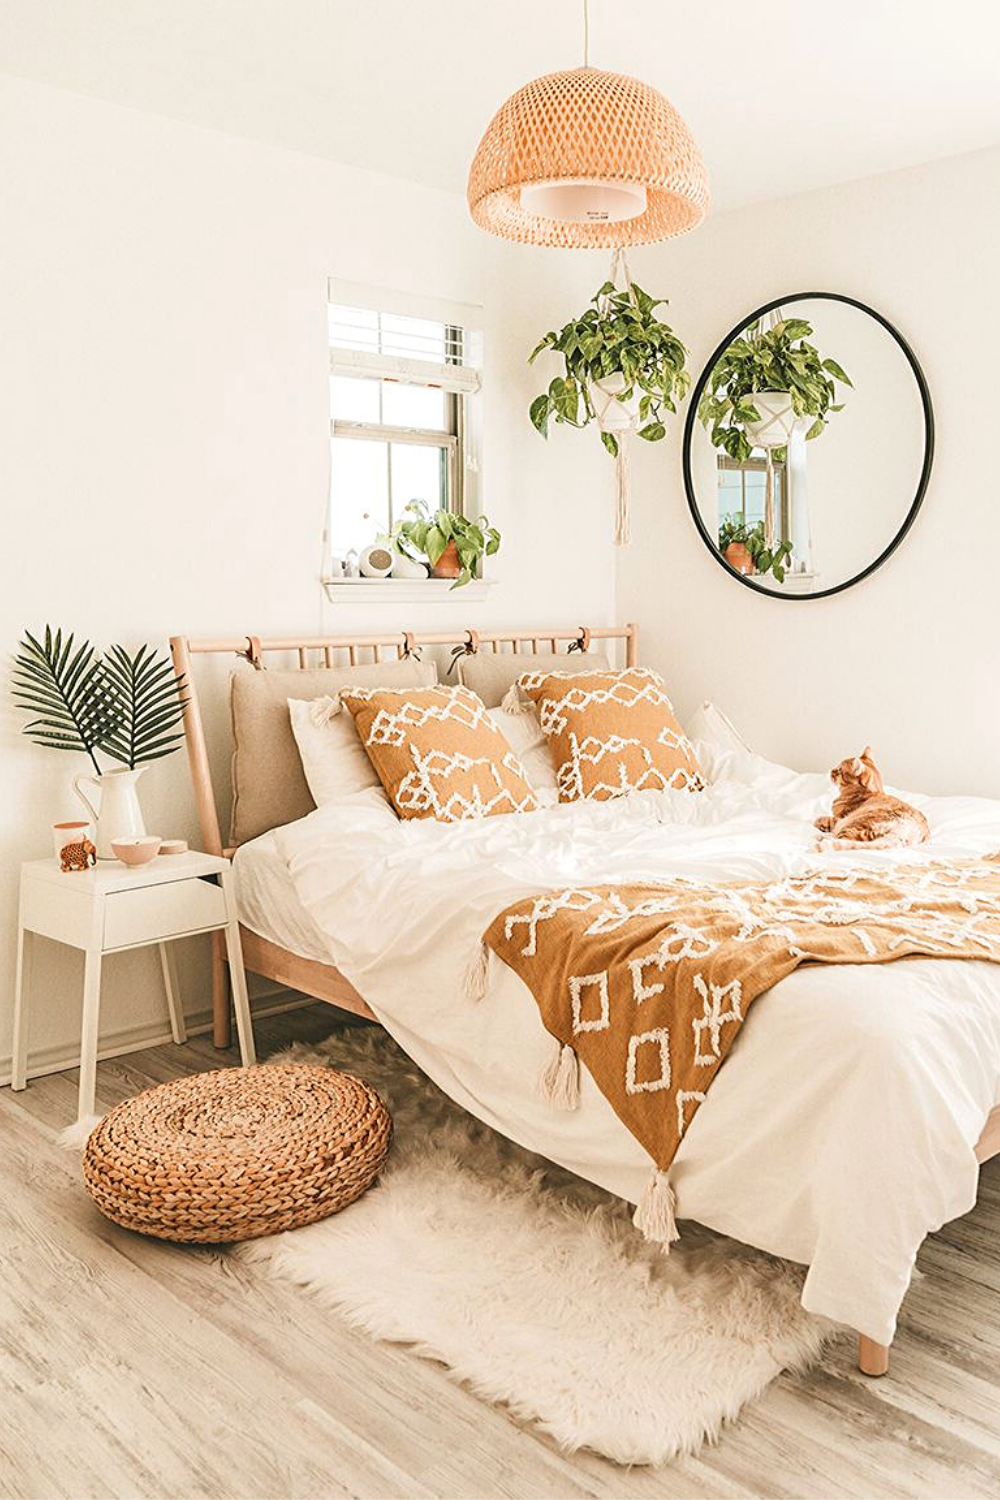 29+ Bedroom furniture ideas on a budget formasi cpns